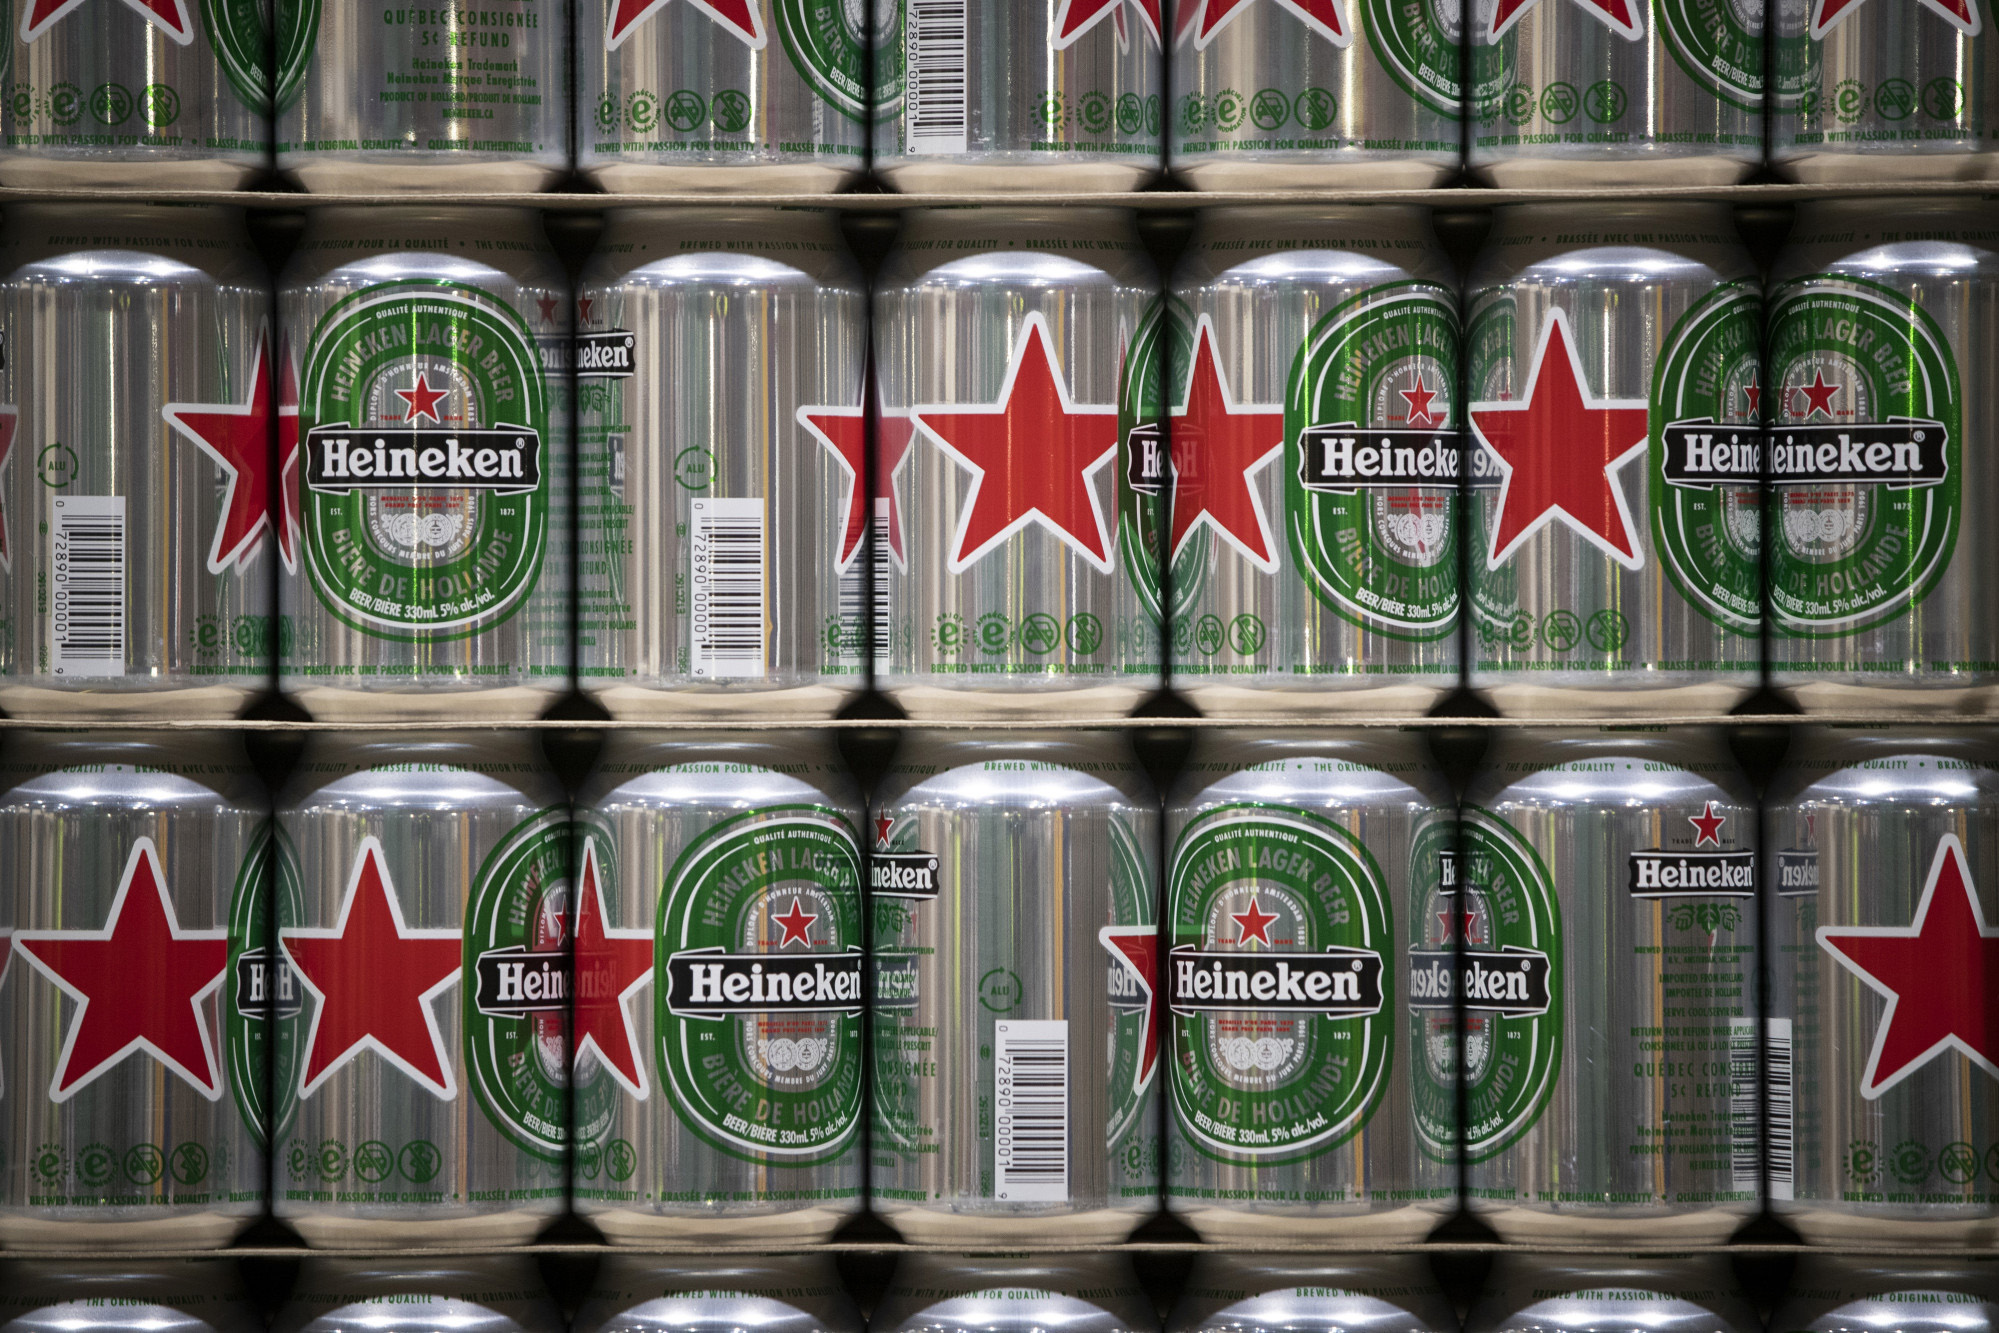 Heineken takes on AB InBev in China with $3 billion deal - SFGate